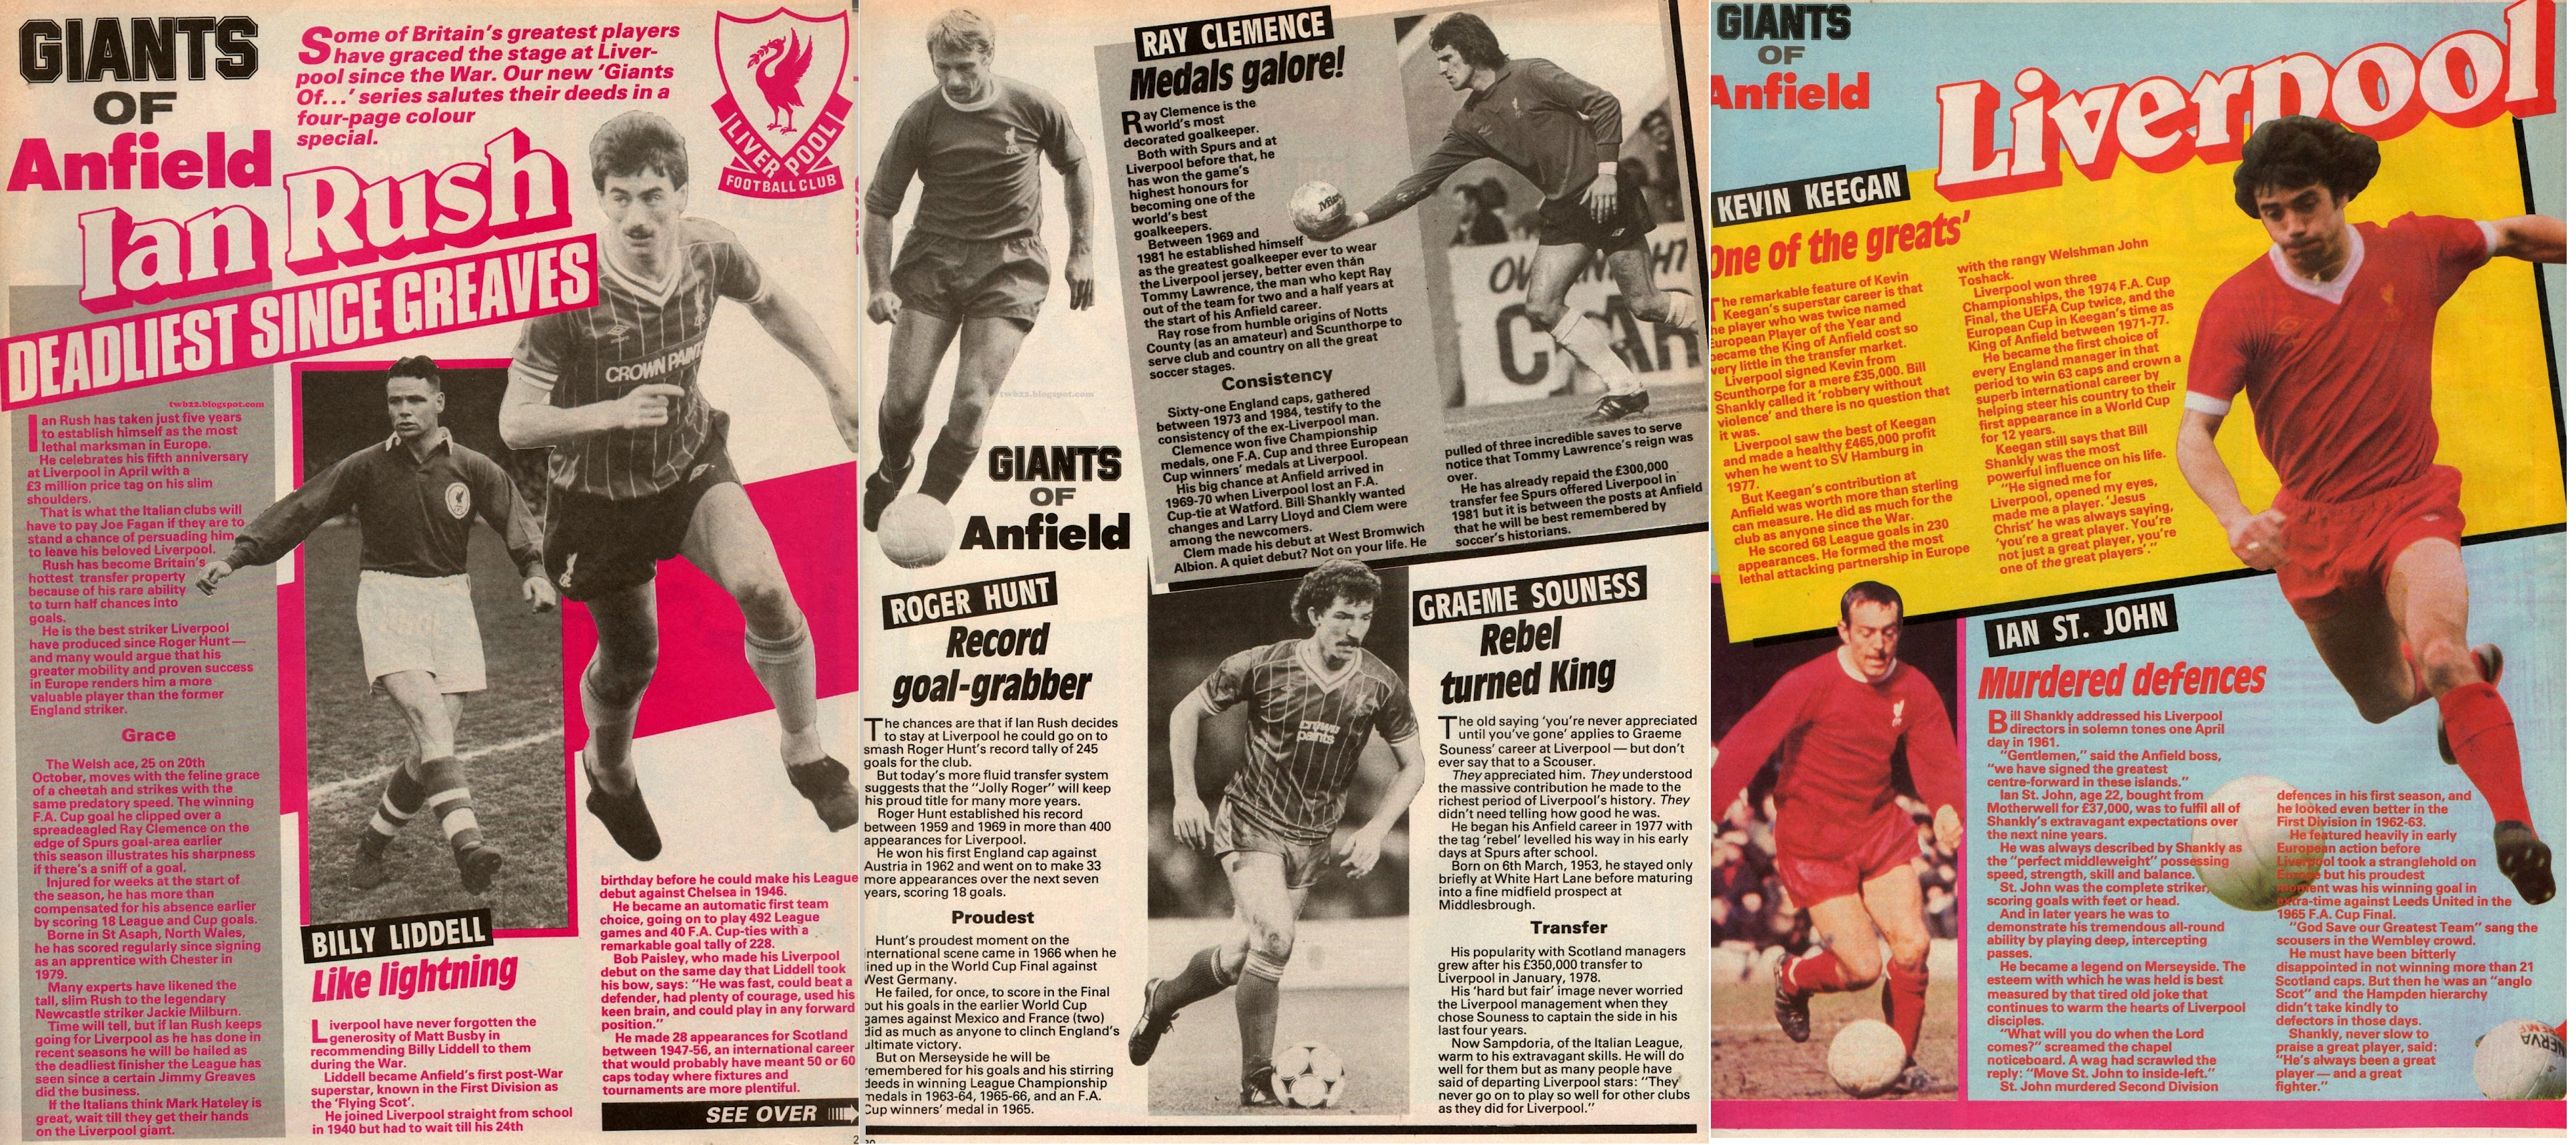 Giants of Anfield